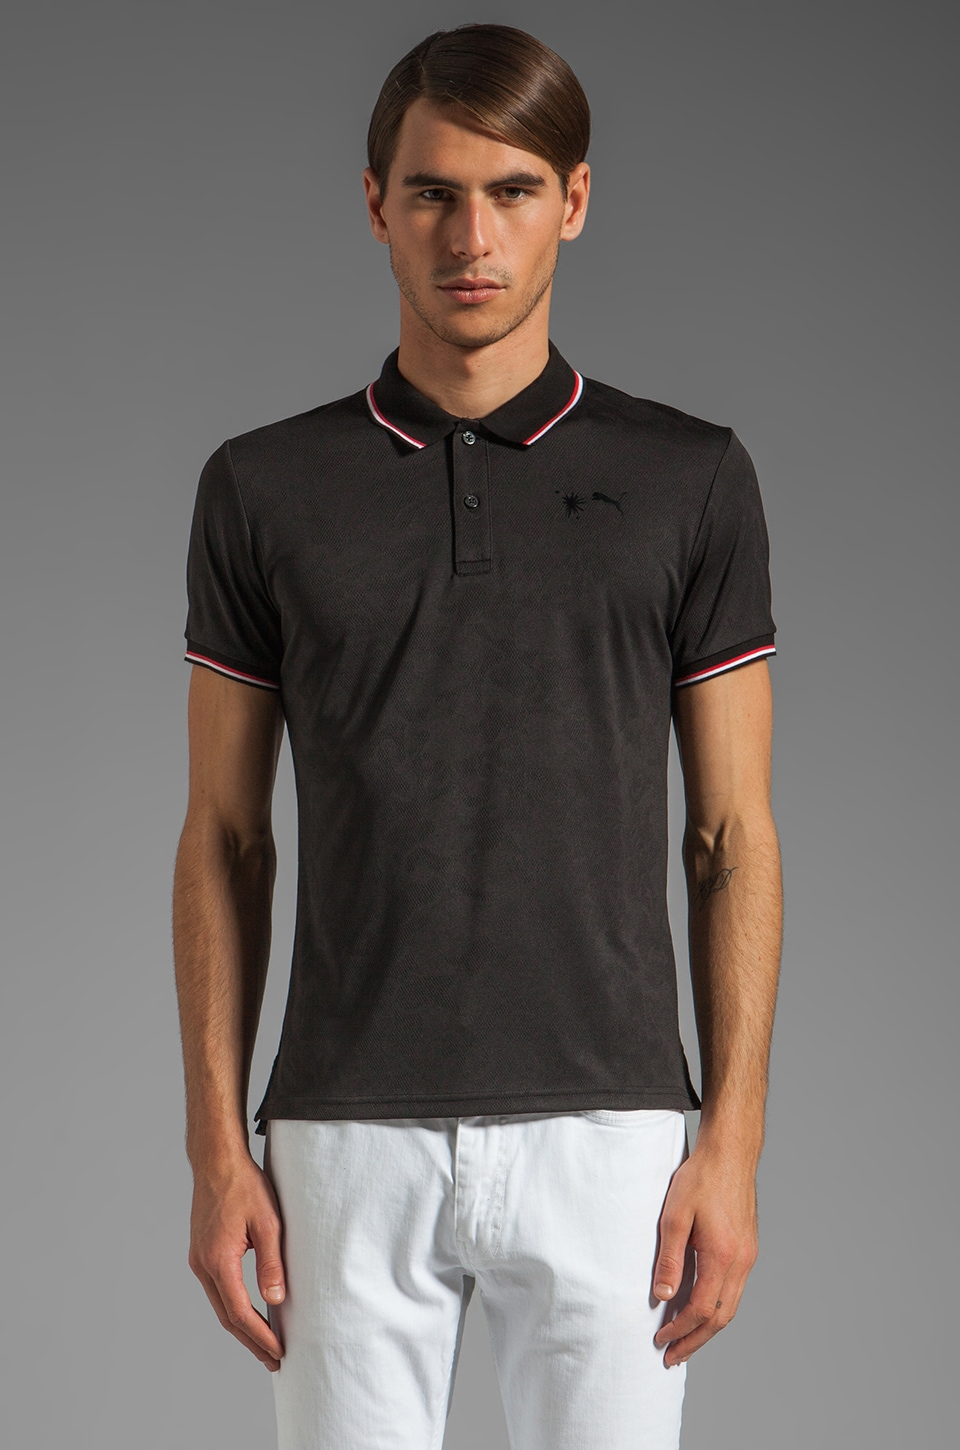 Puma by Mihara SS Jacquard Polo in Black